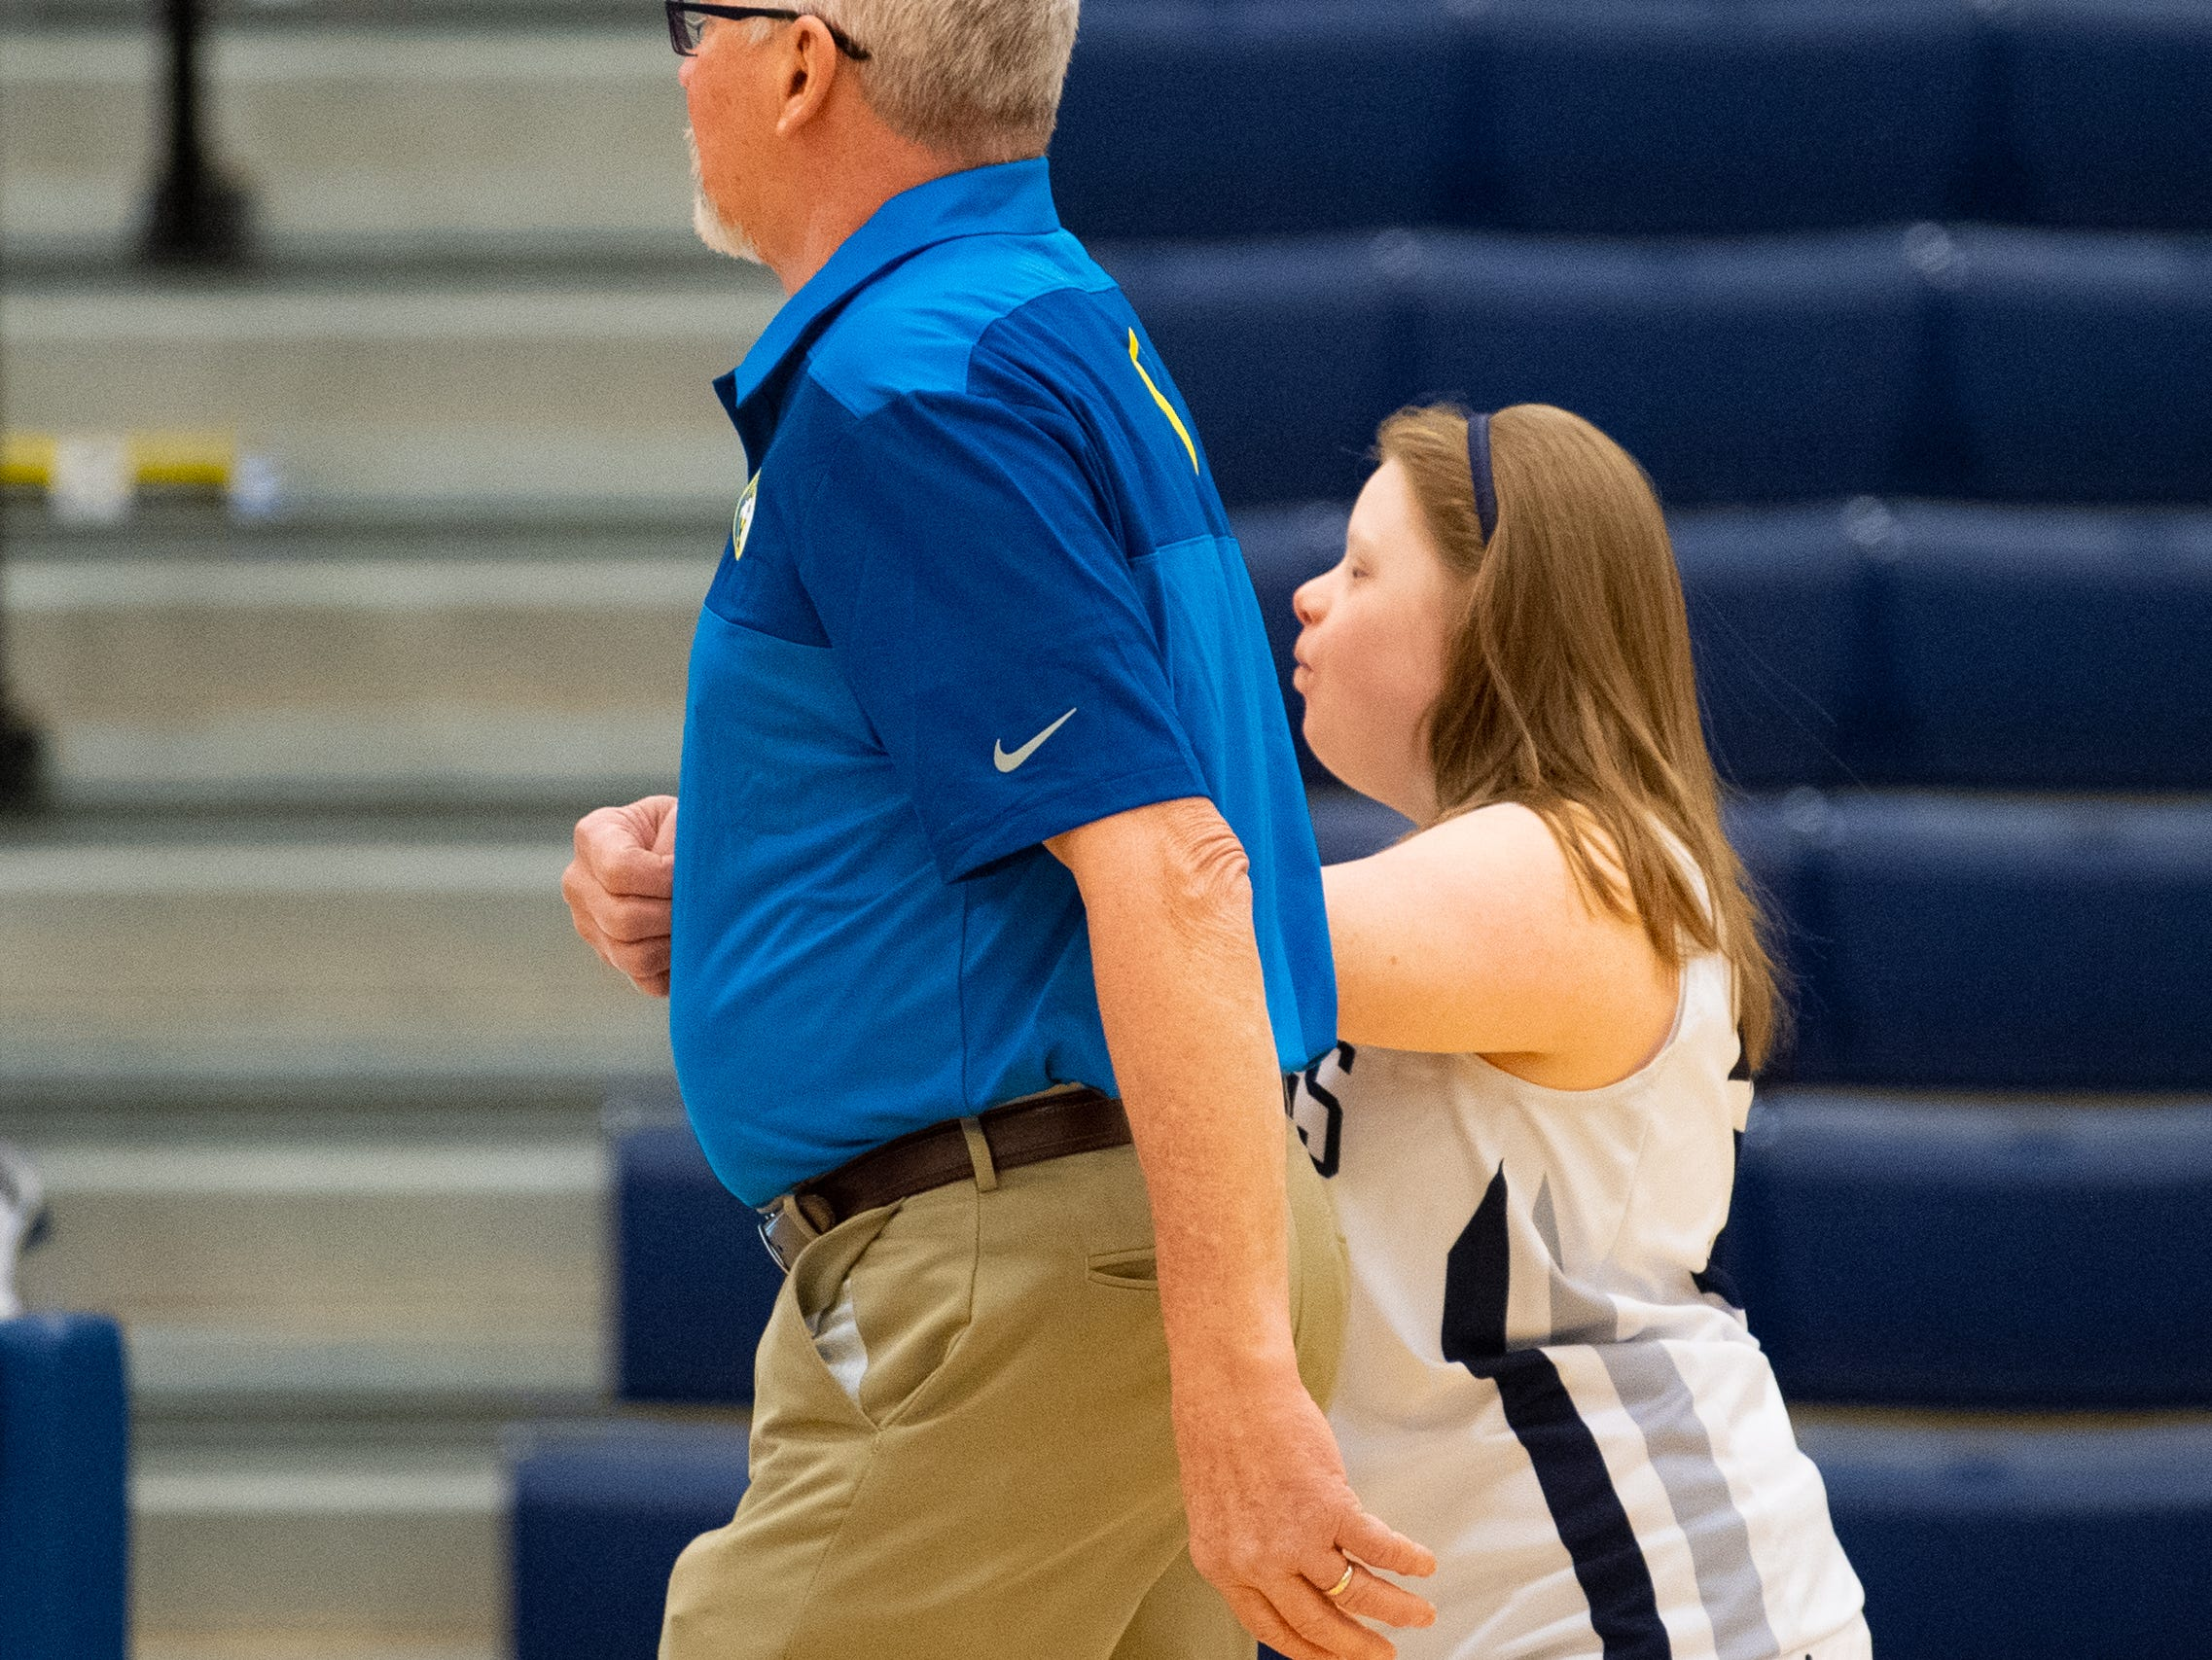 Katie Kniery (34) and coach Al Trimmer walk over to meet the captains before the junior varsity girls' basketball game between West York and Dover, February 1, 2019.